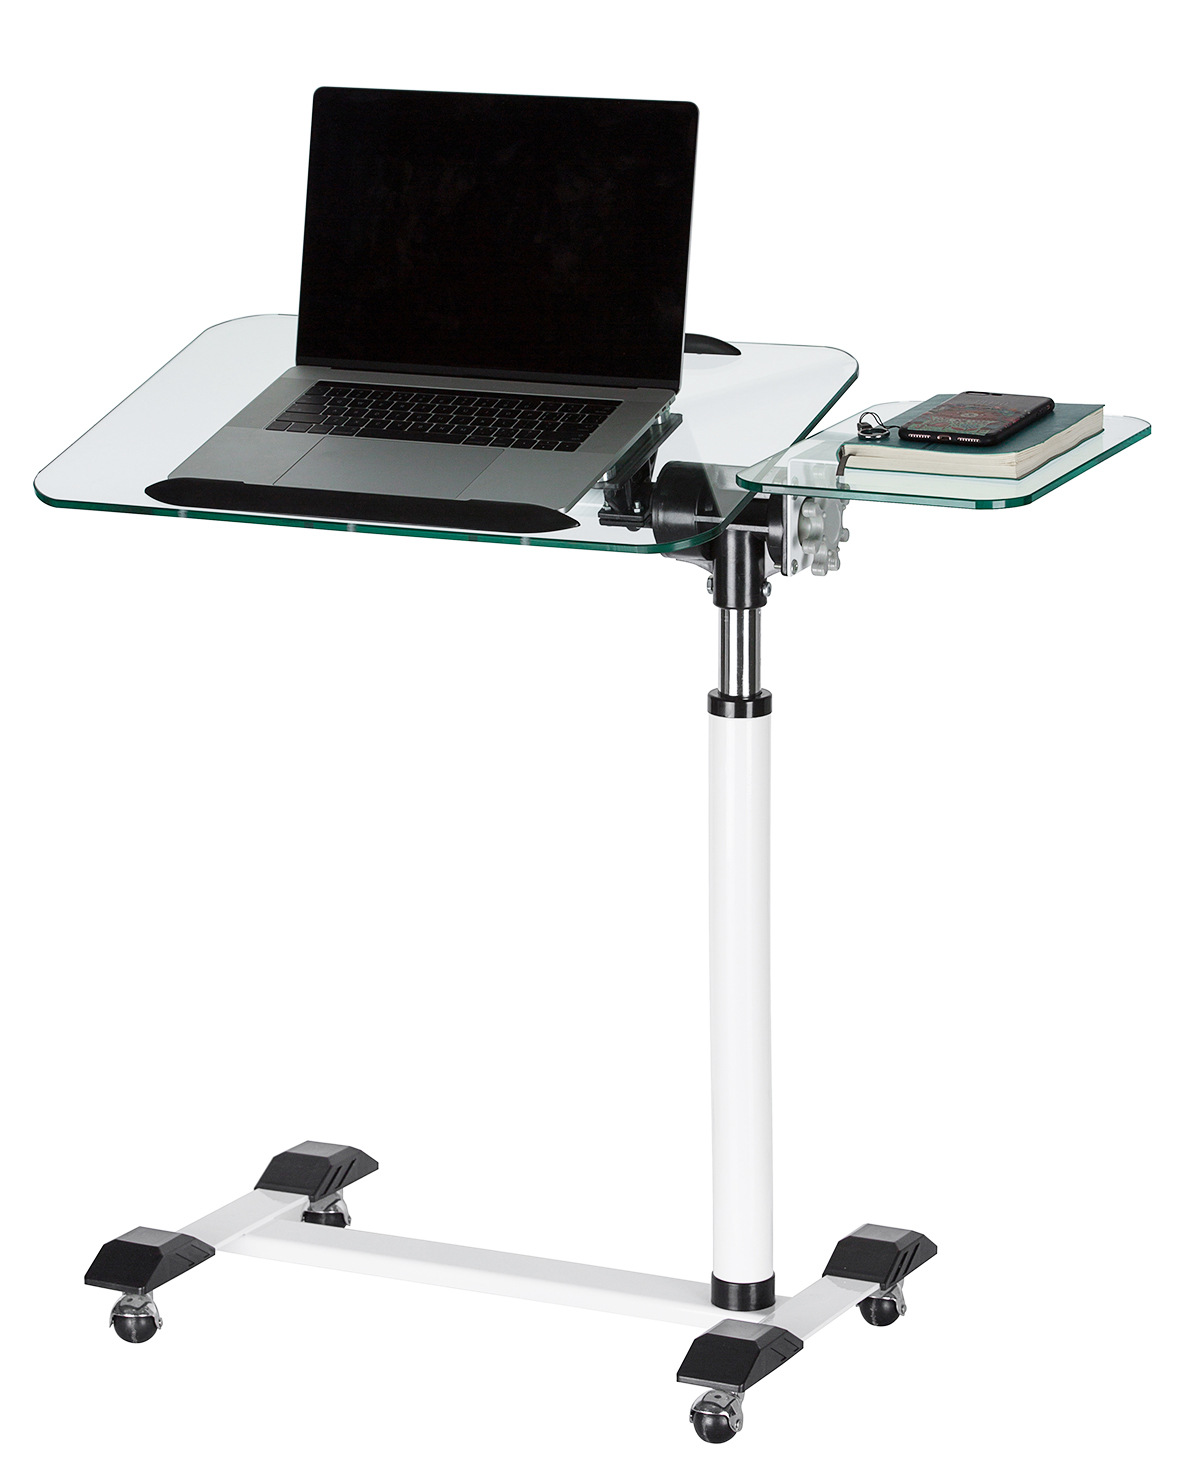 Adjustable Height Laptop Cart With Storage